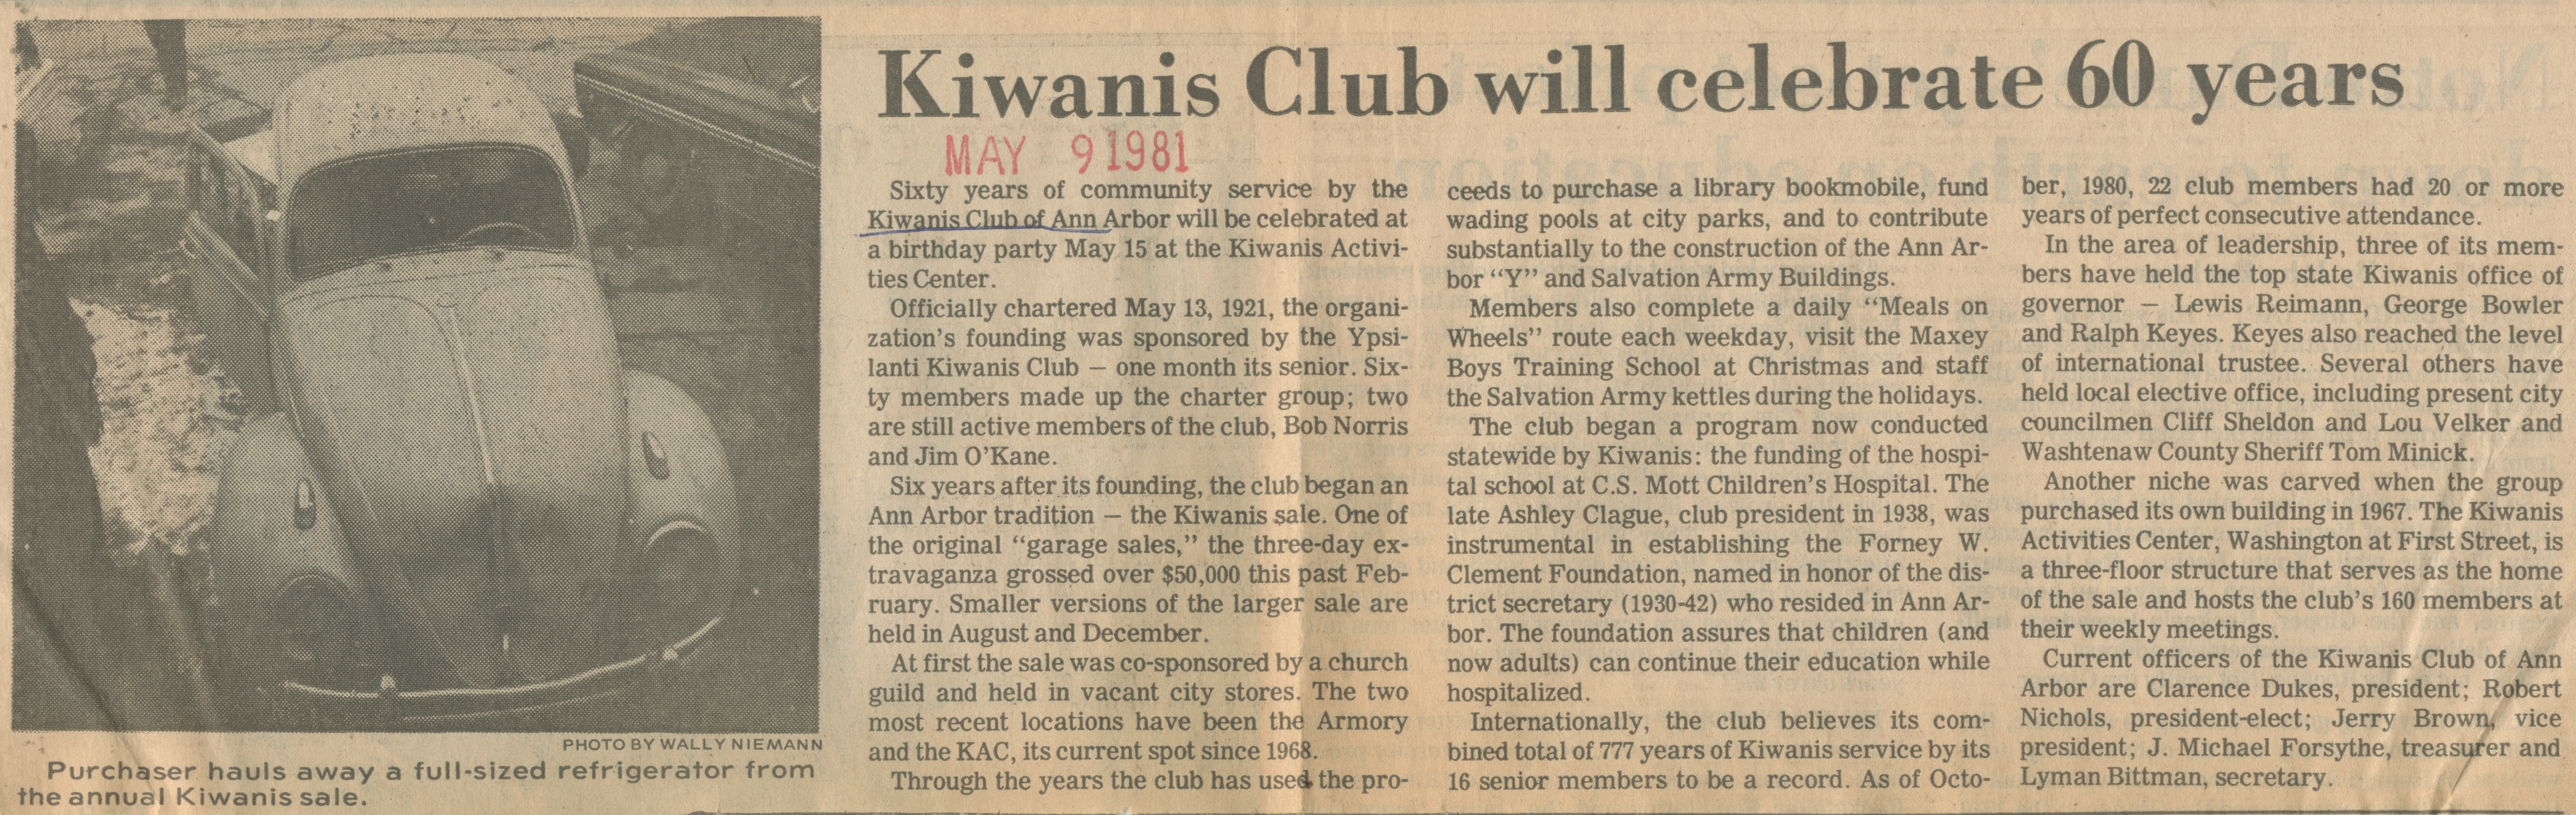 Kiwanis Club Will Celebrate 60 Years image